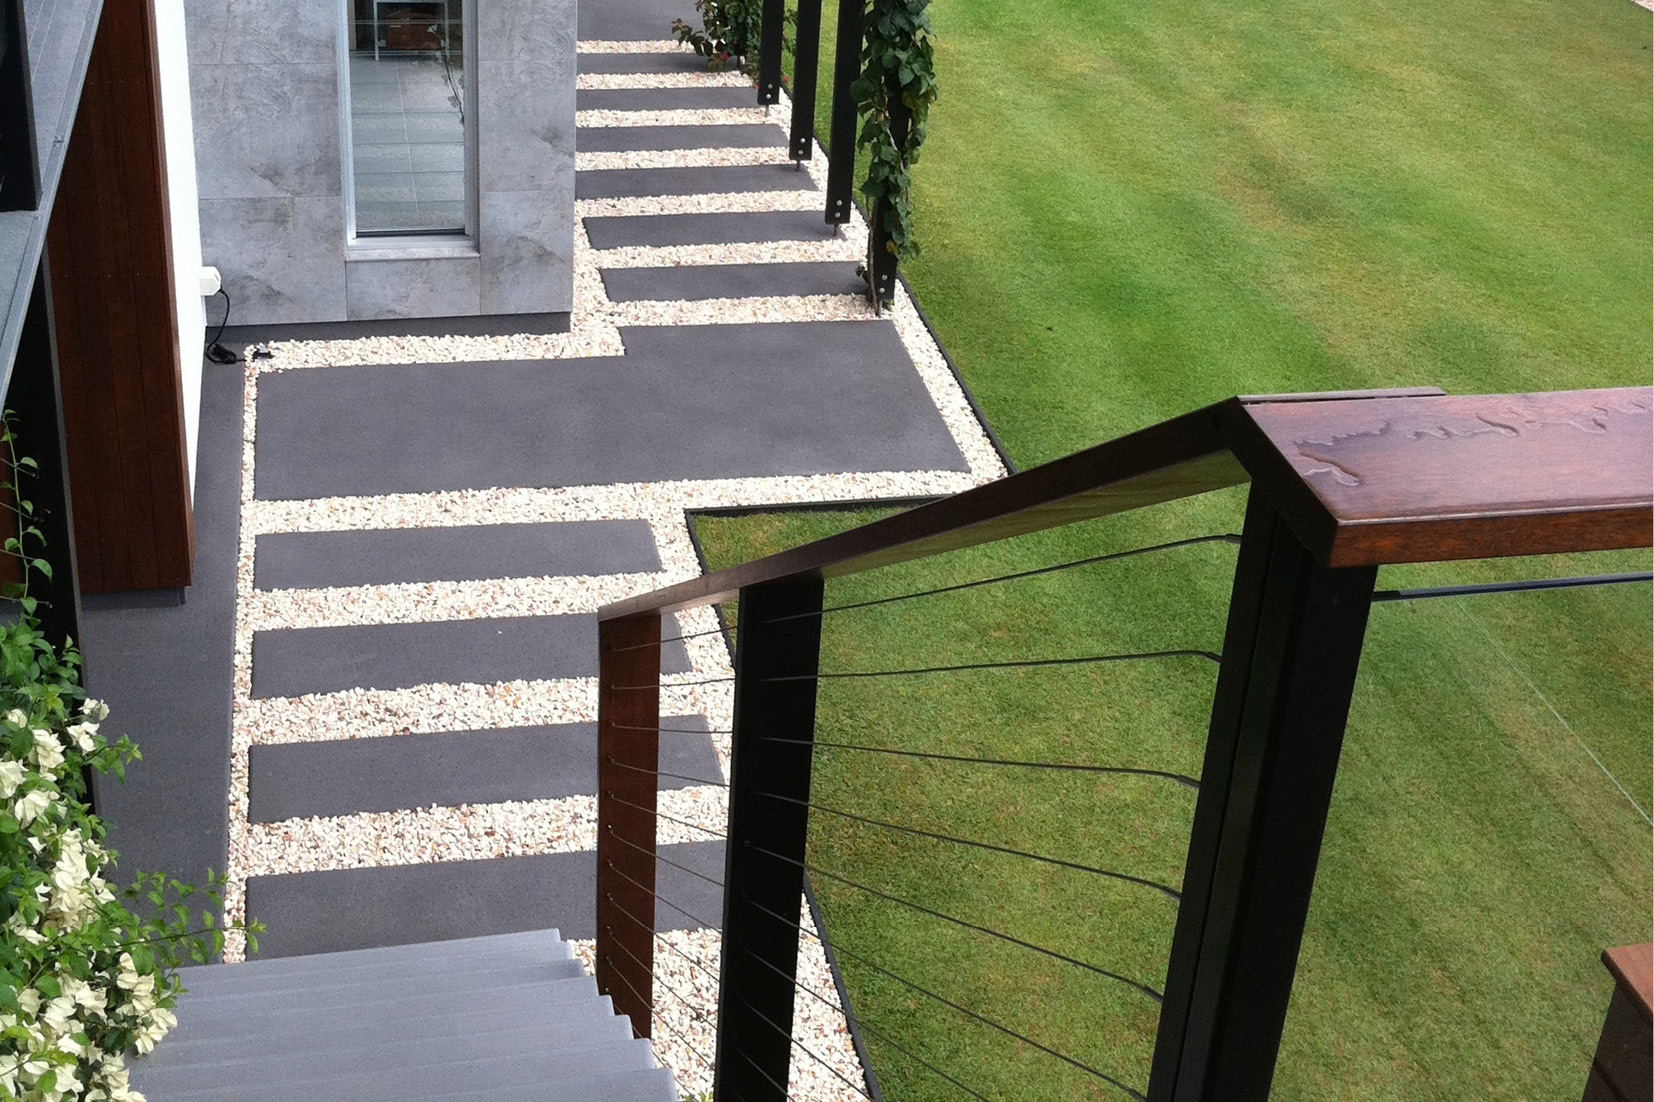 Structural landscaping for modern Sunshine Coast look.